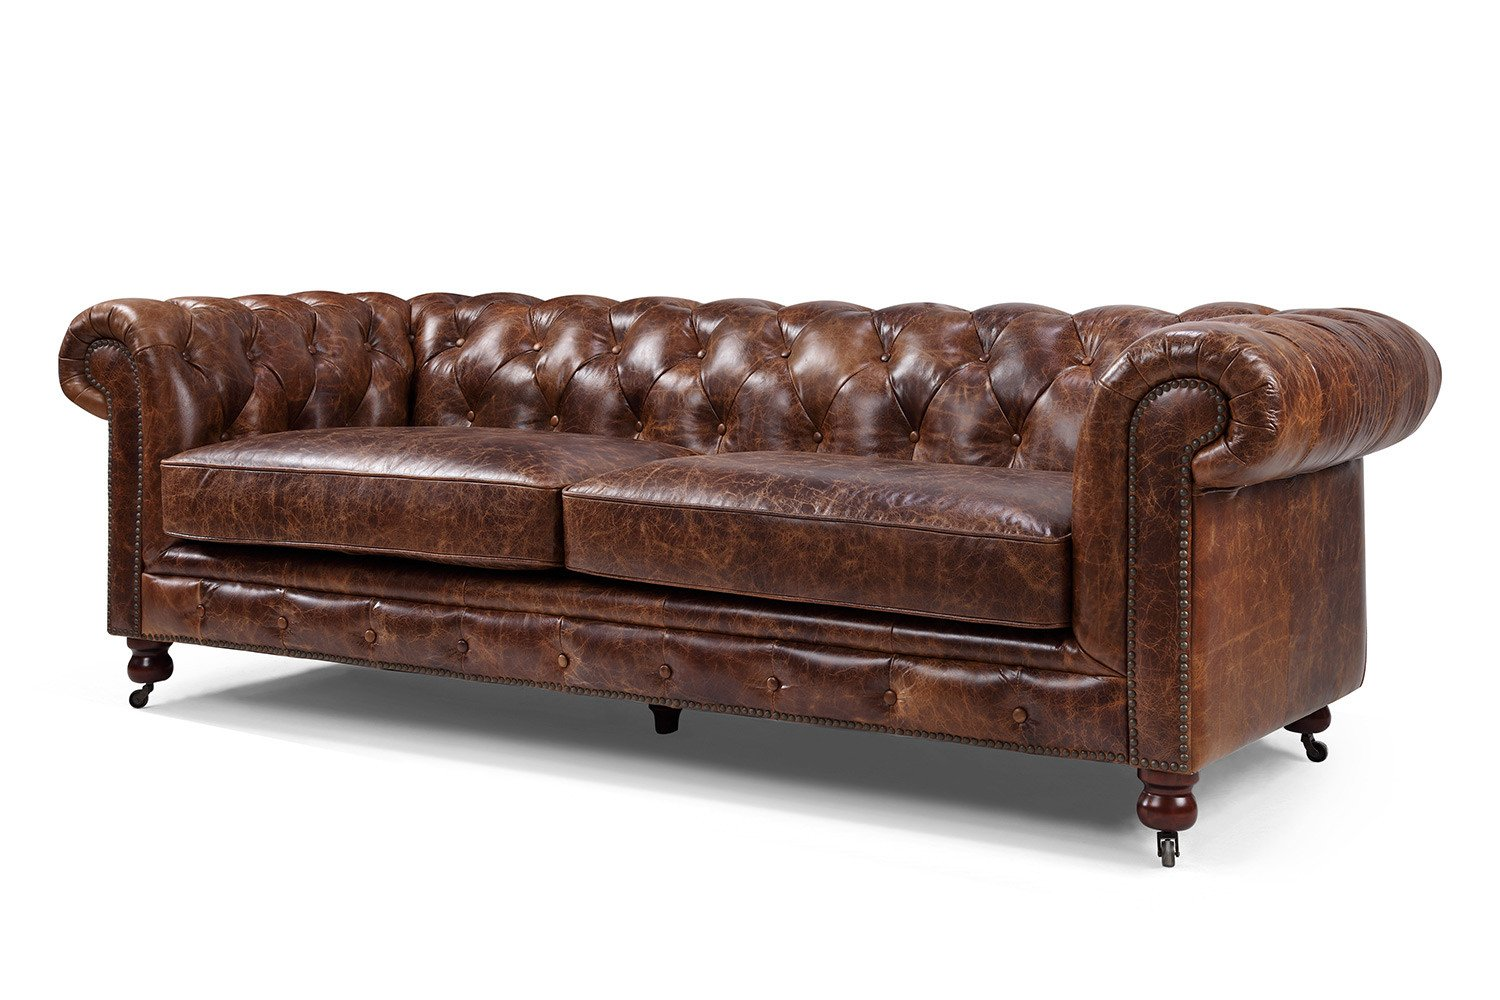 Great Amazon.com: Kensington Chesterfield Tufted Sofa By Rose U0026 Moore: Kitchen U0026  Dining